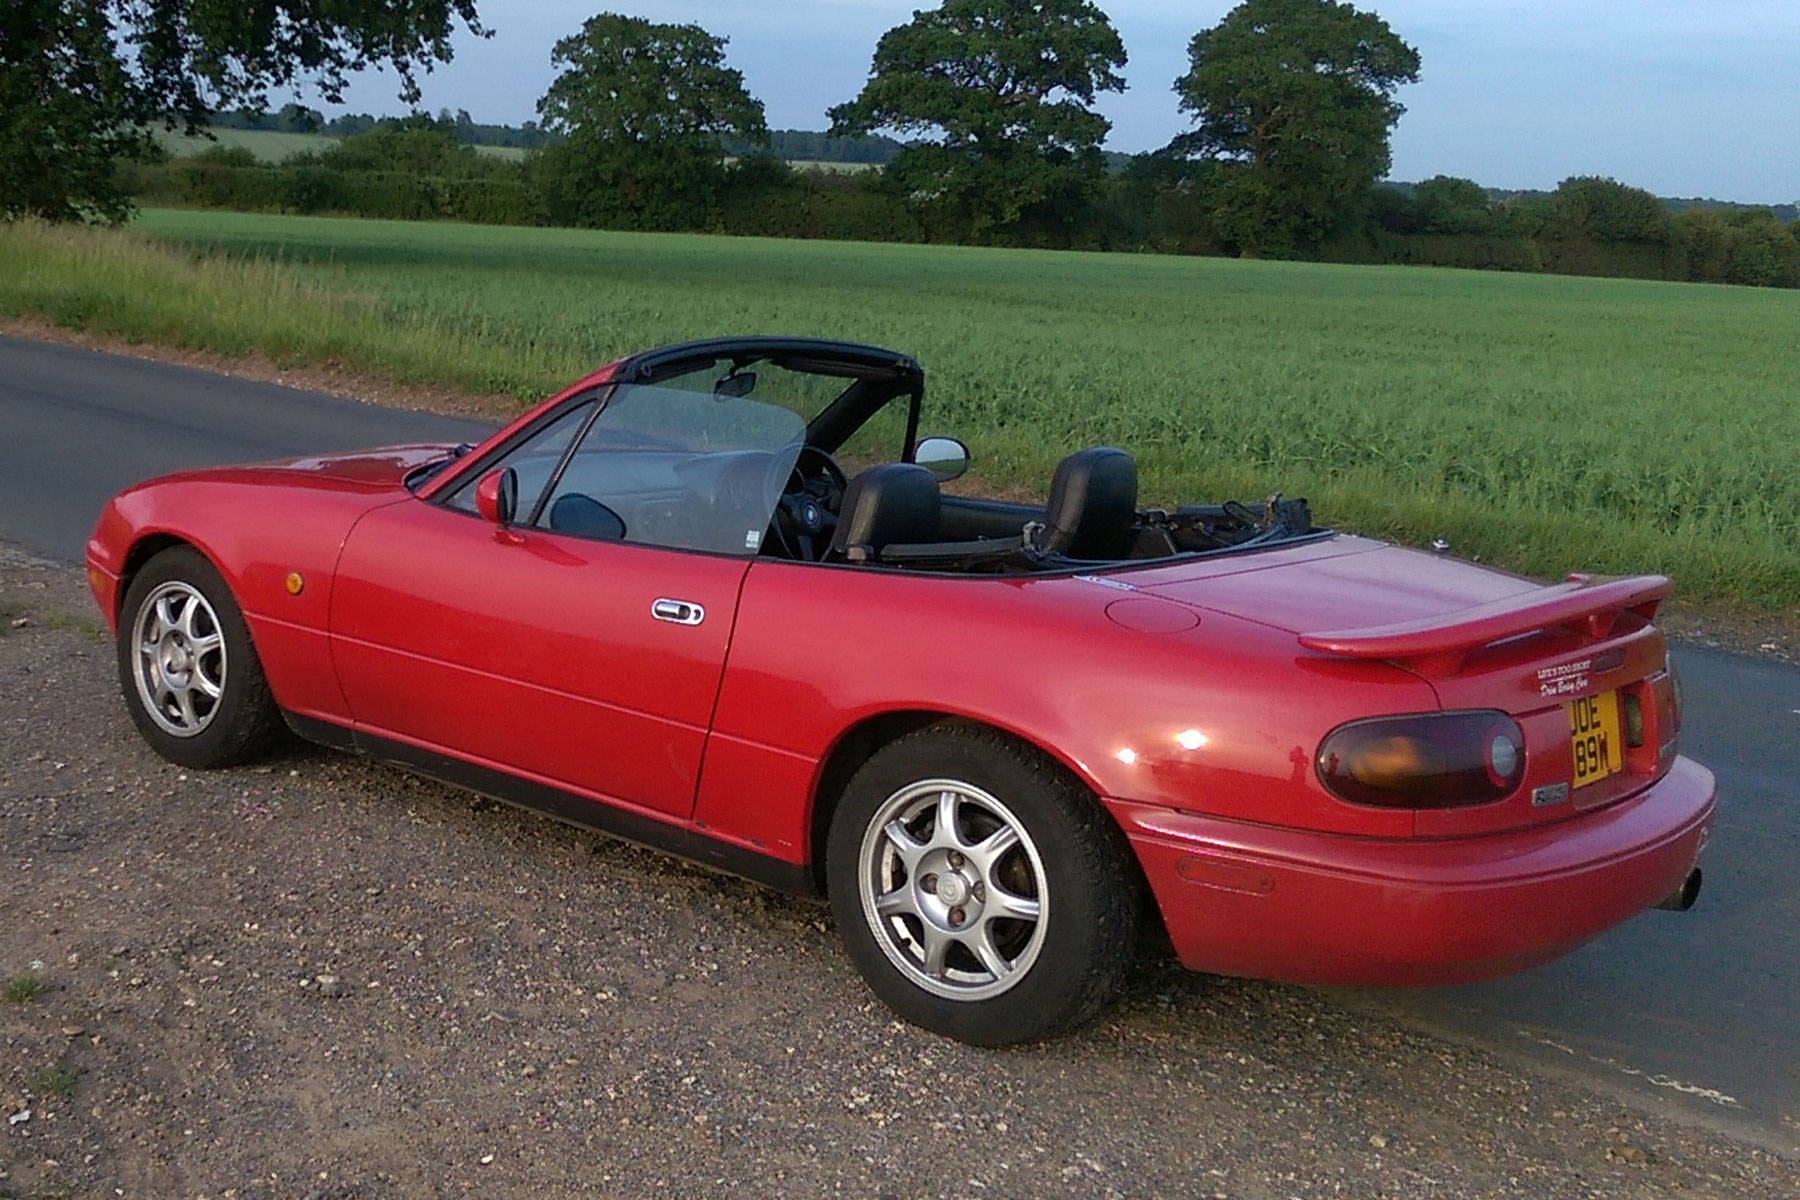 1993 Mazda MX-5 S-Special: goodbye